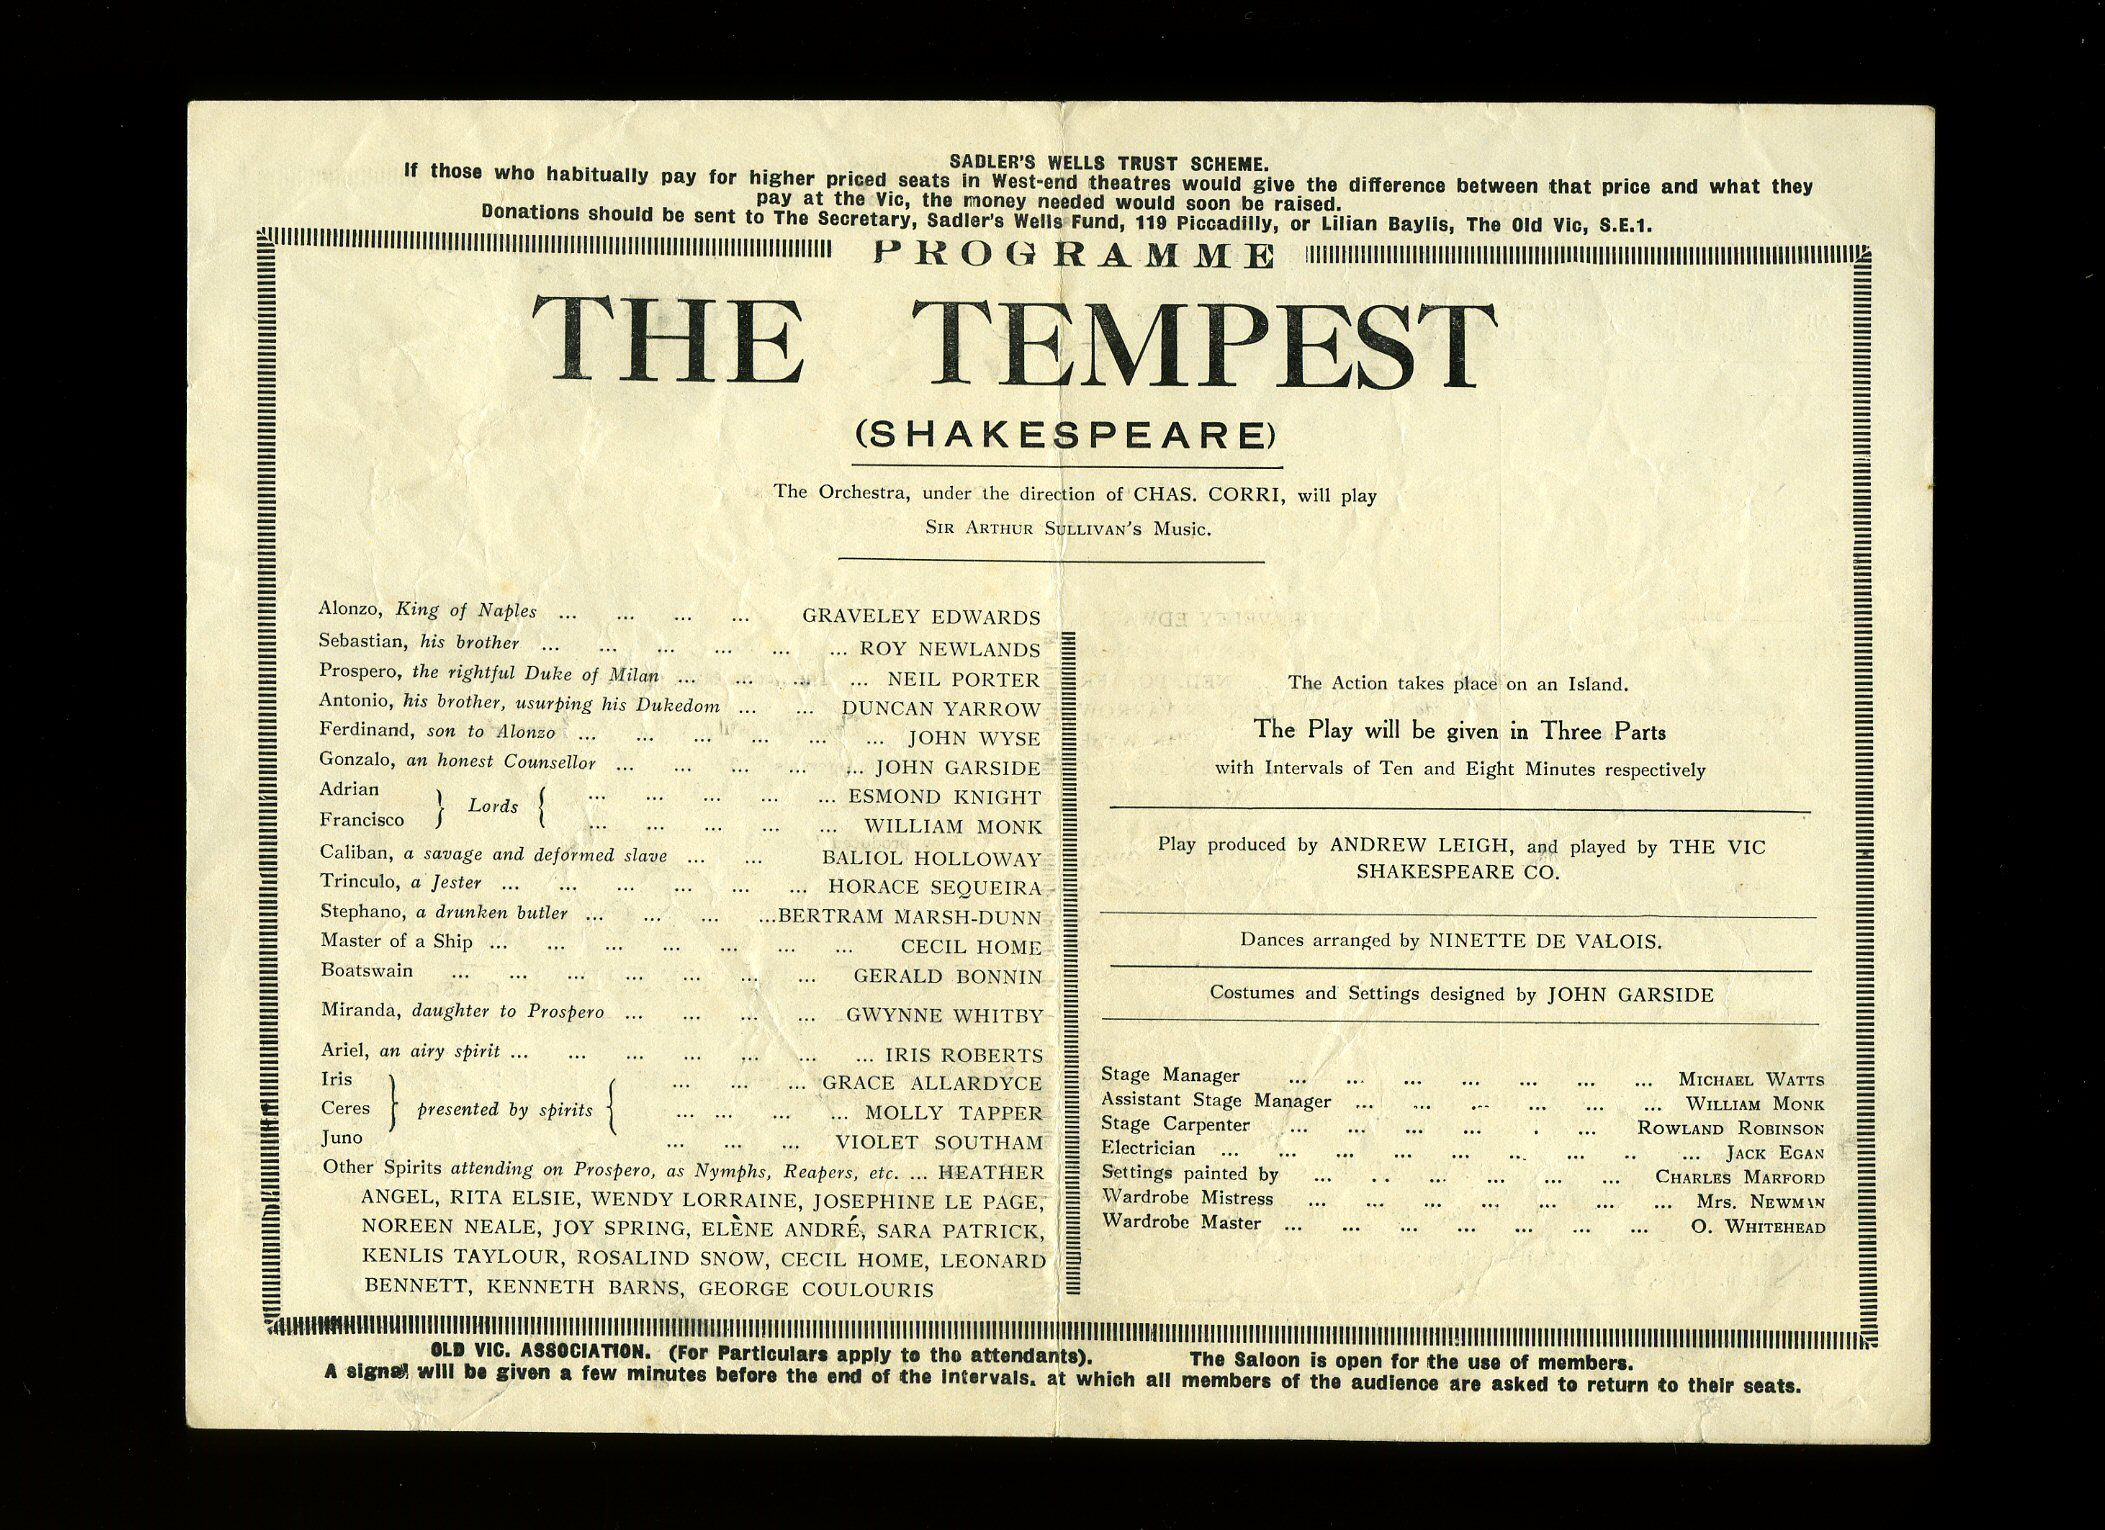 Study Guide for The Tempest: Three Major Themes, Motifs, and Concepts